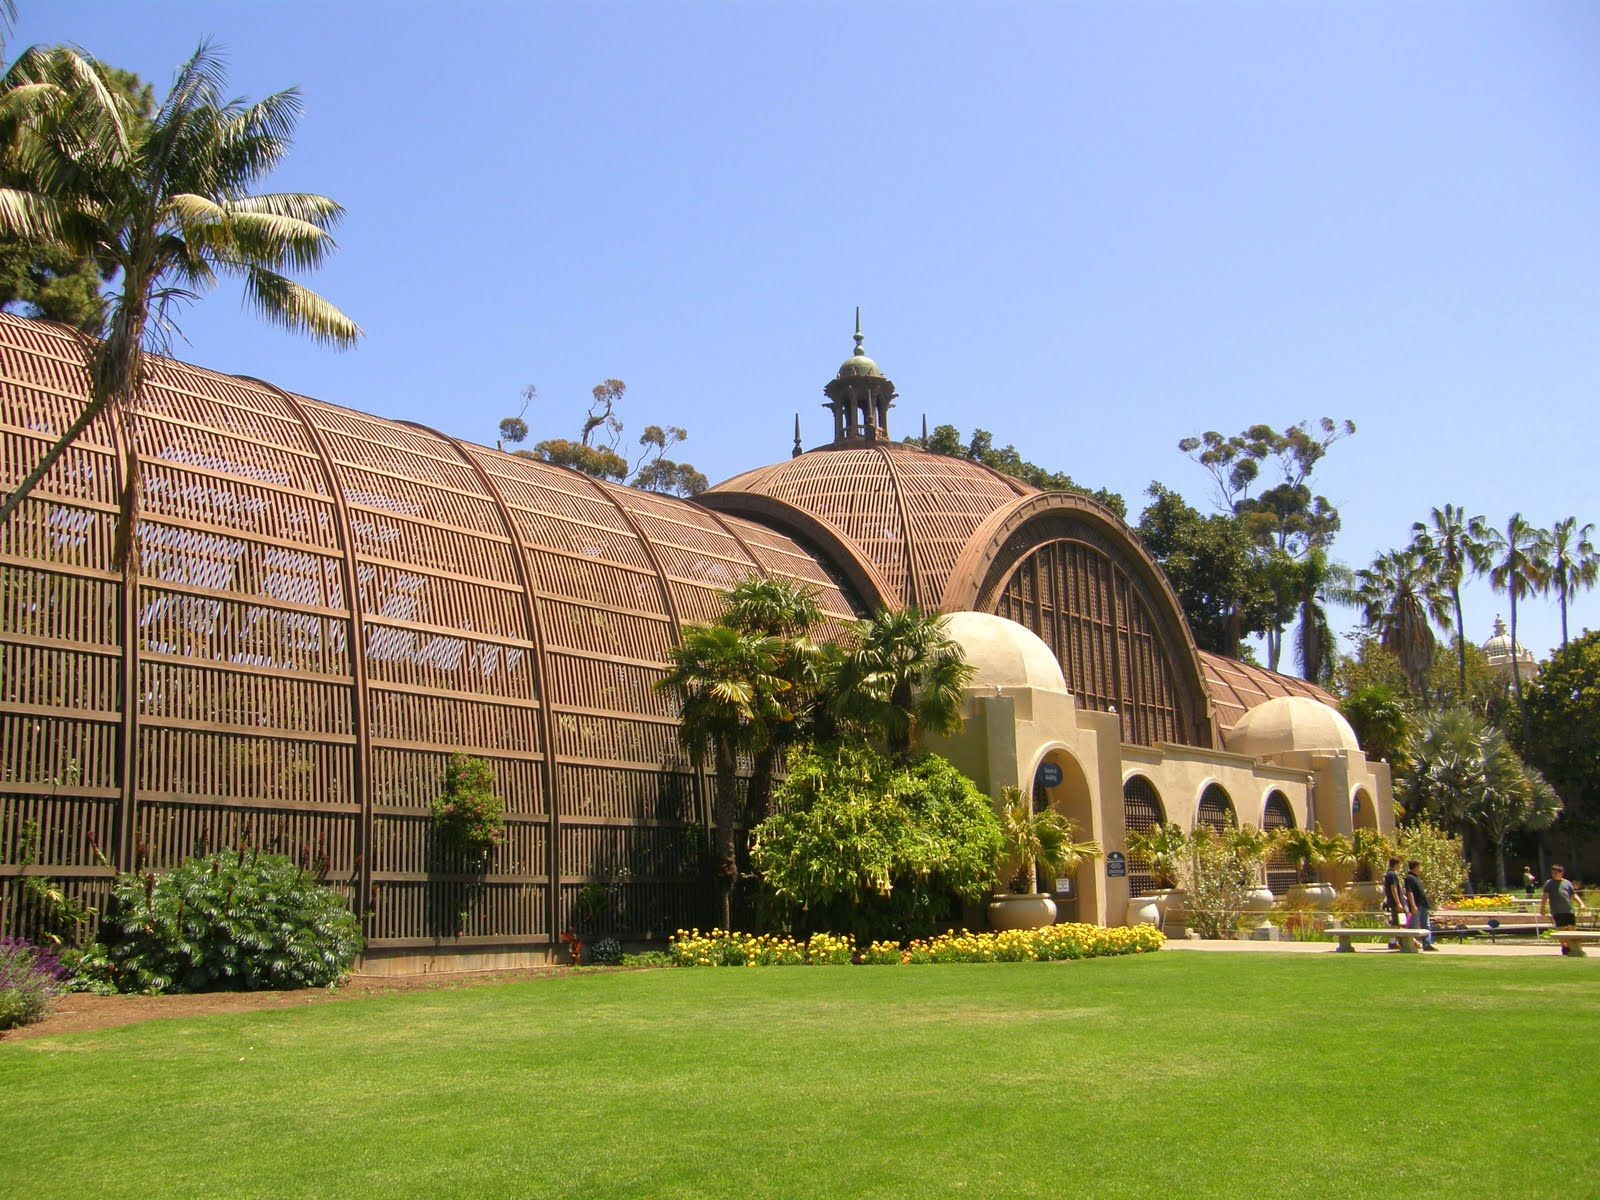 Domed Lath House